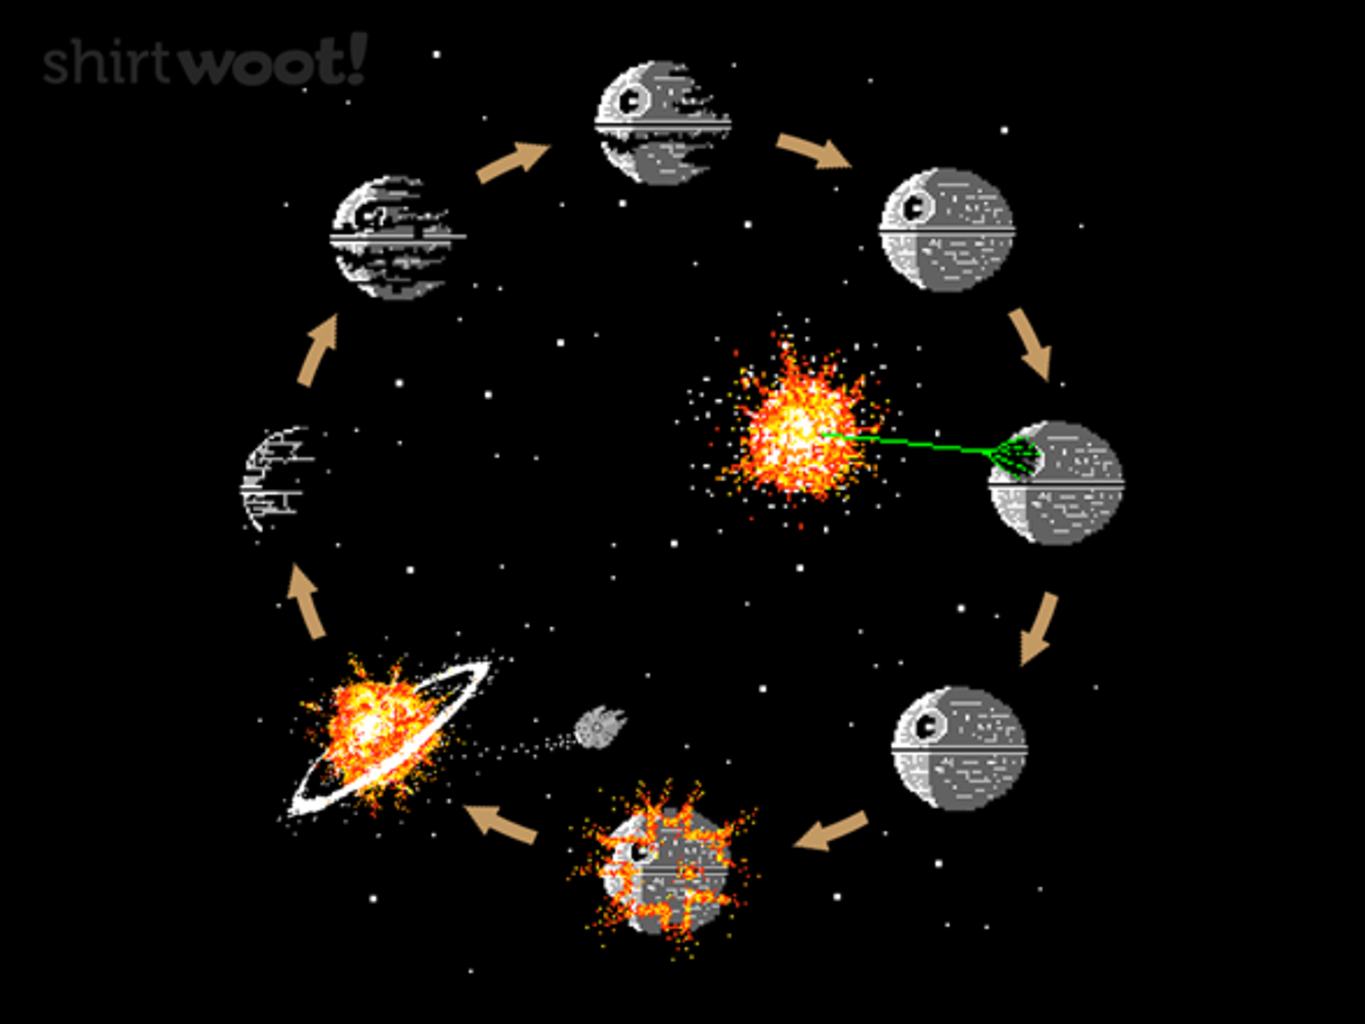 Woot!: Life Cycle of a Death Star